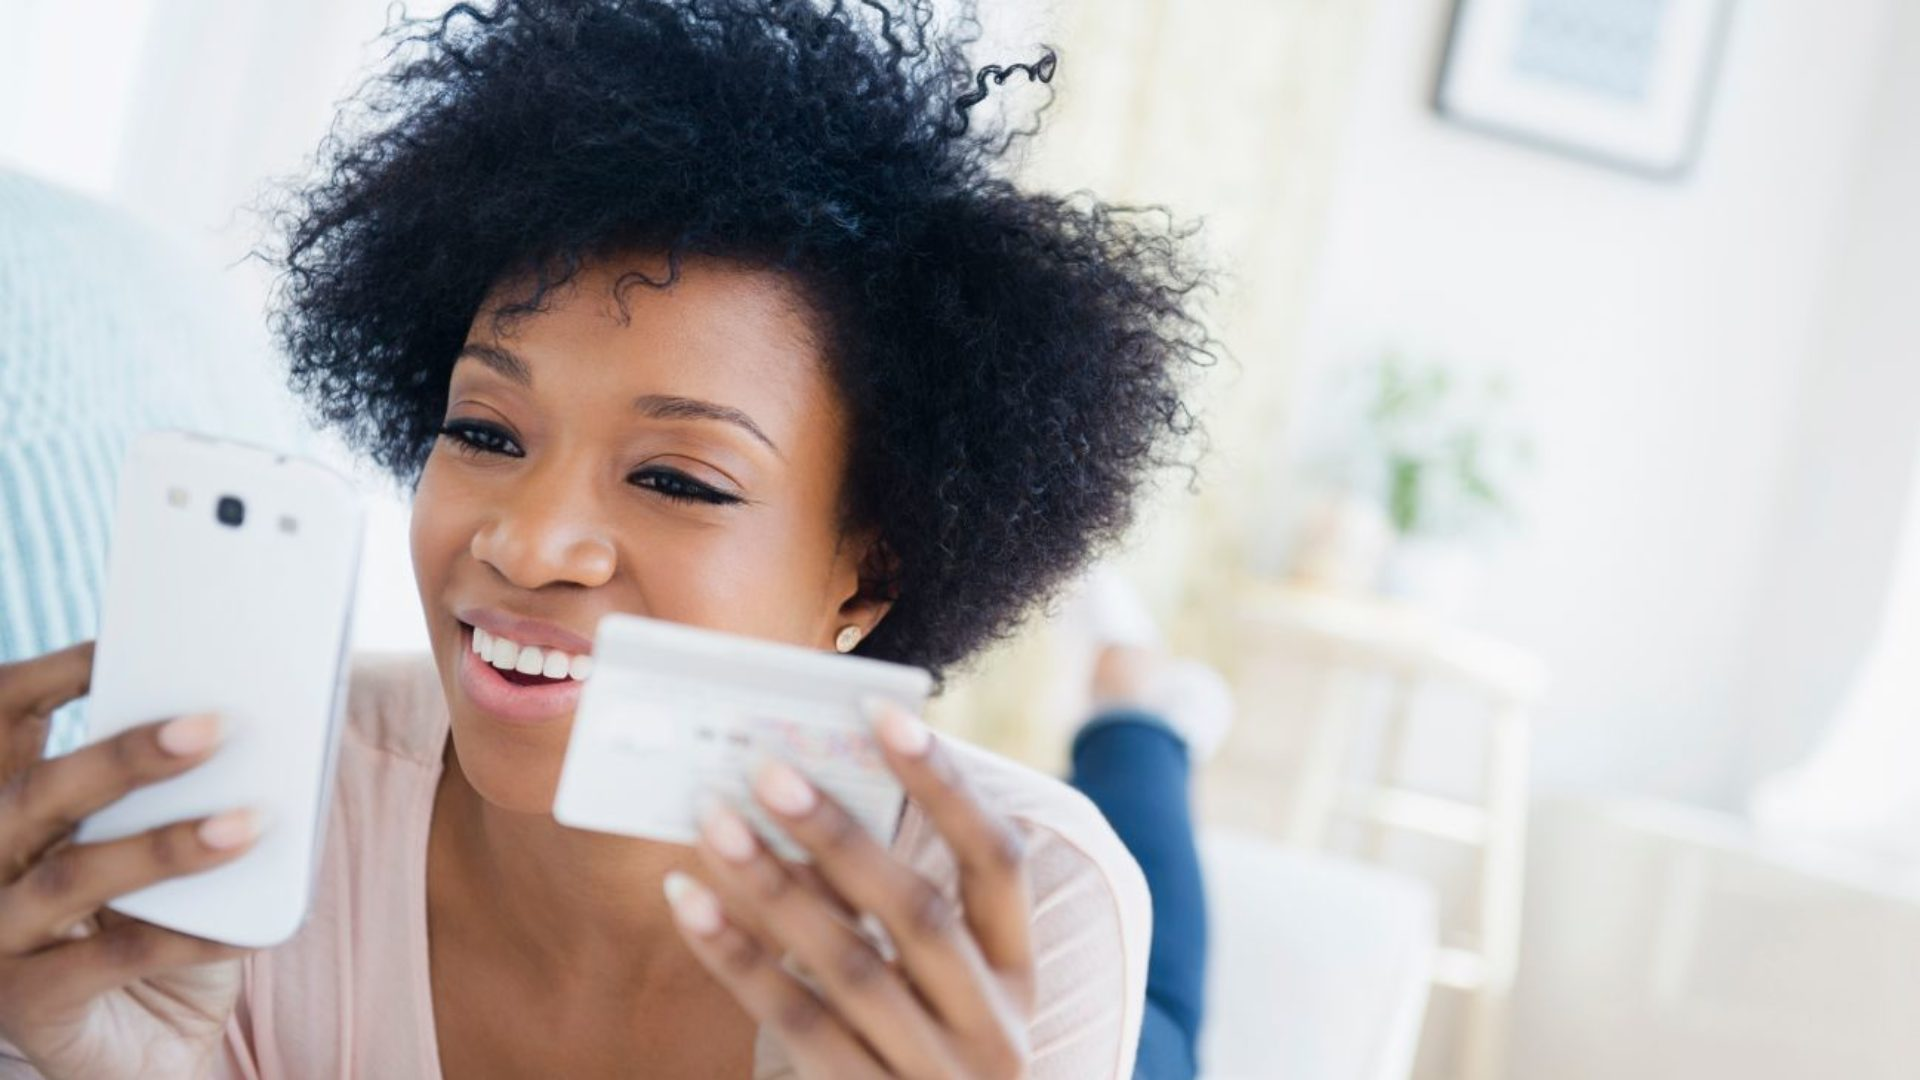 The Upgrade: 3 Apps to Help Get Your Financial House in Order